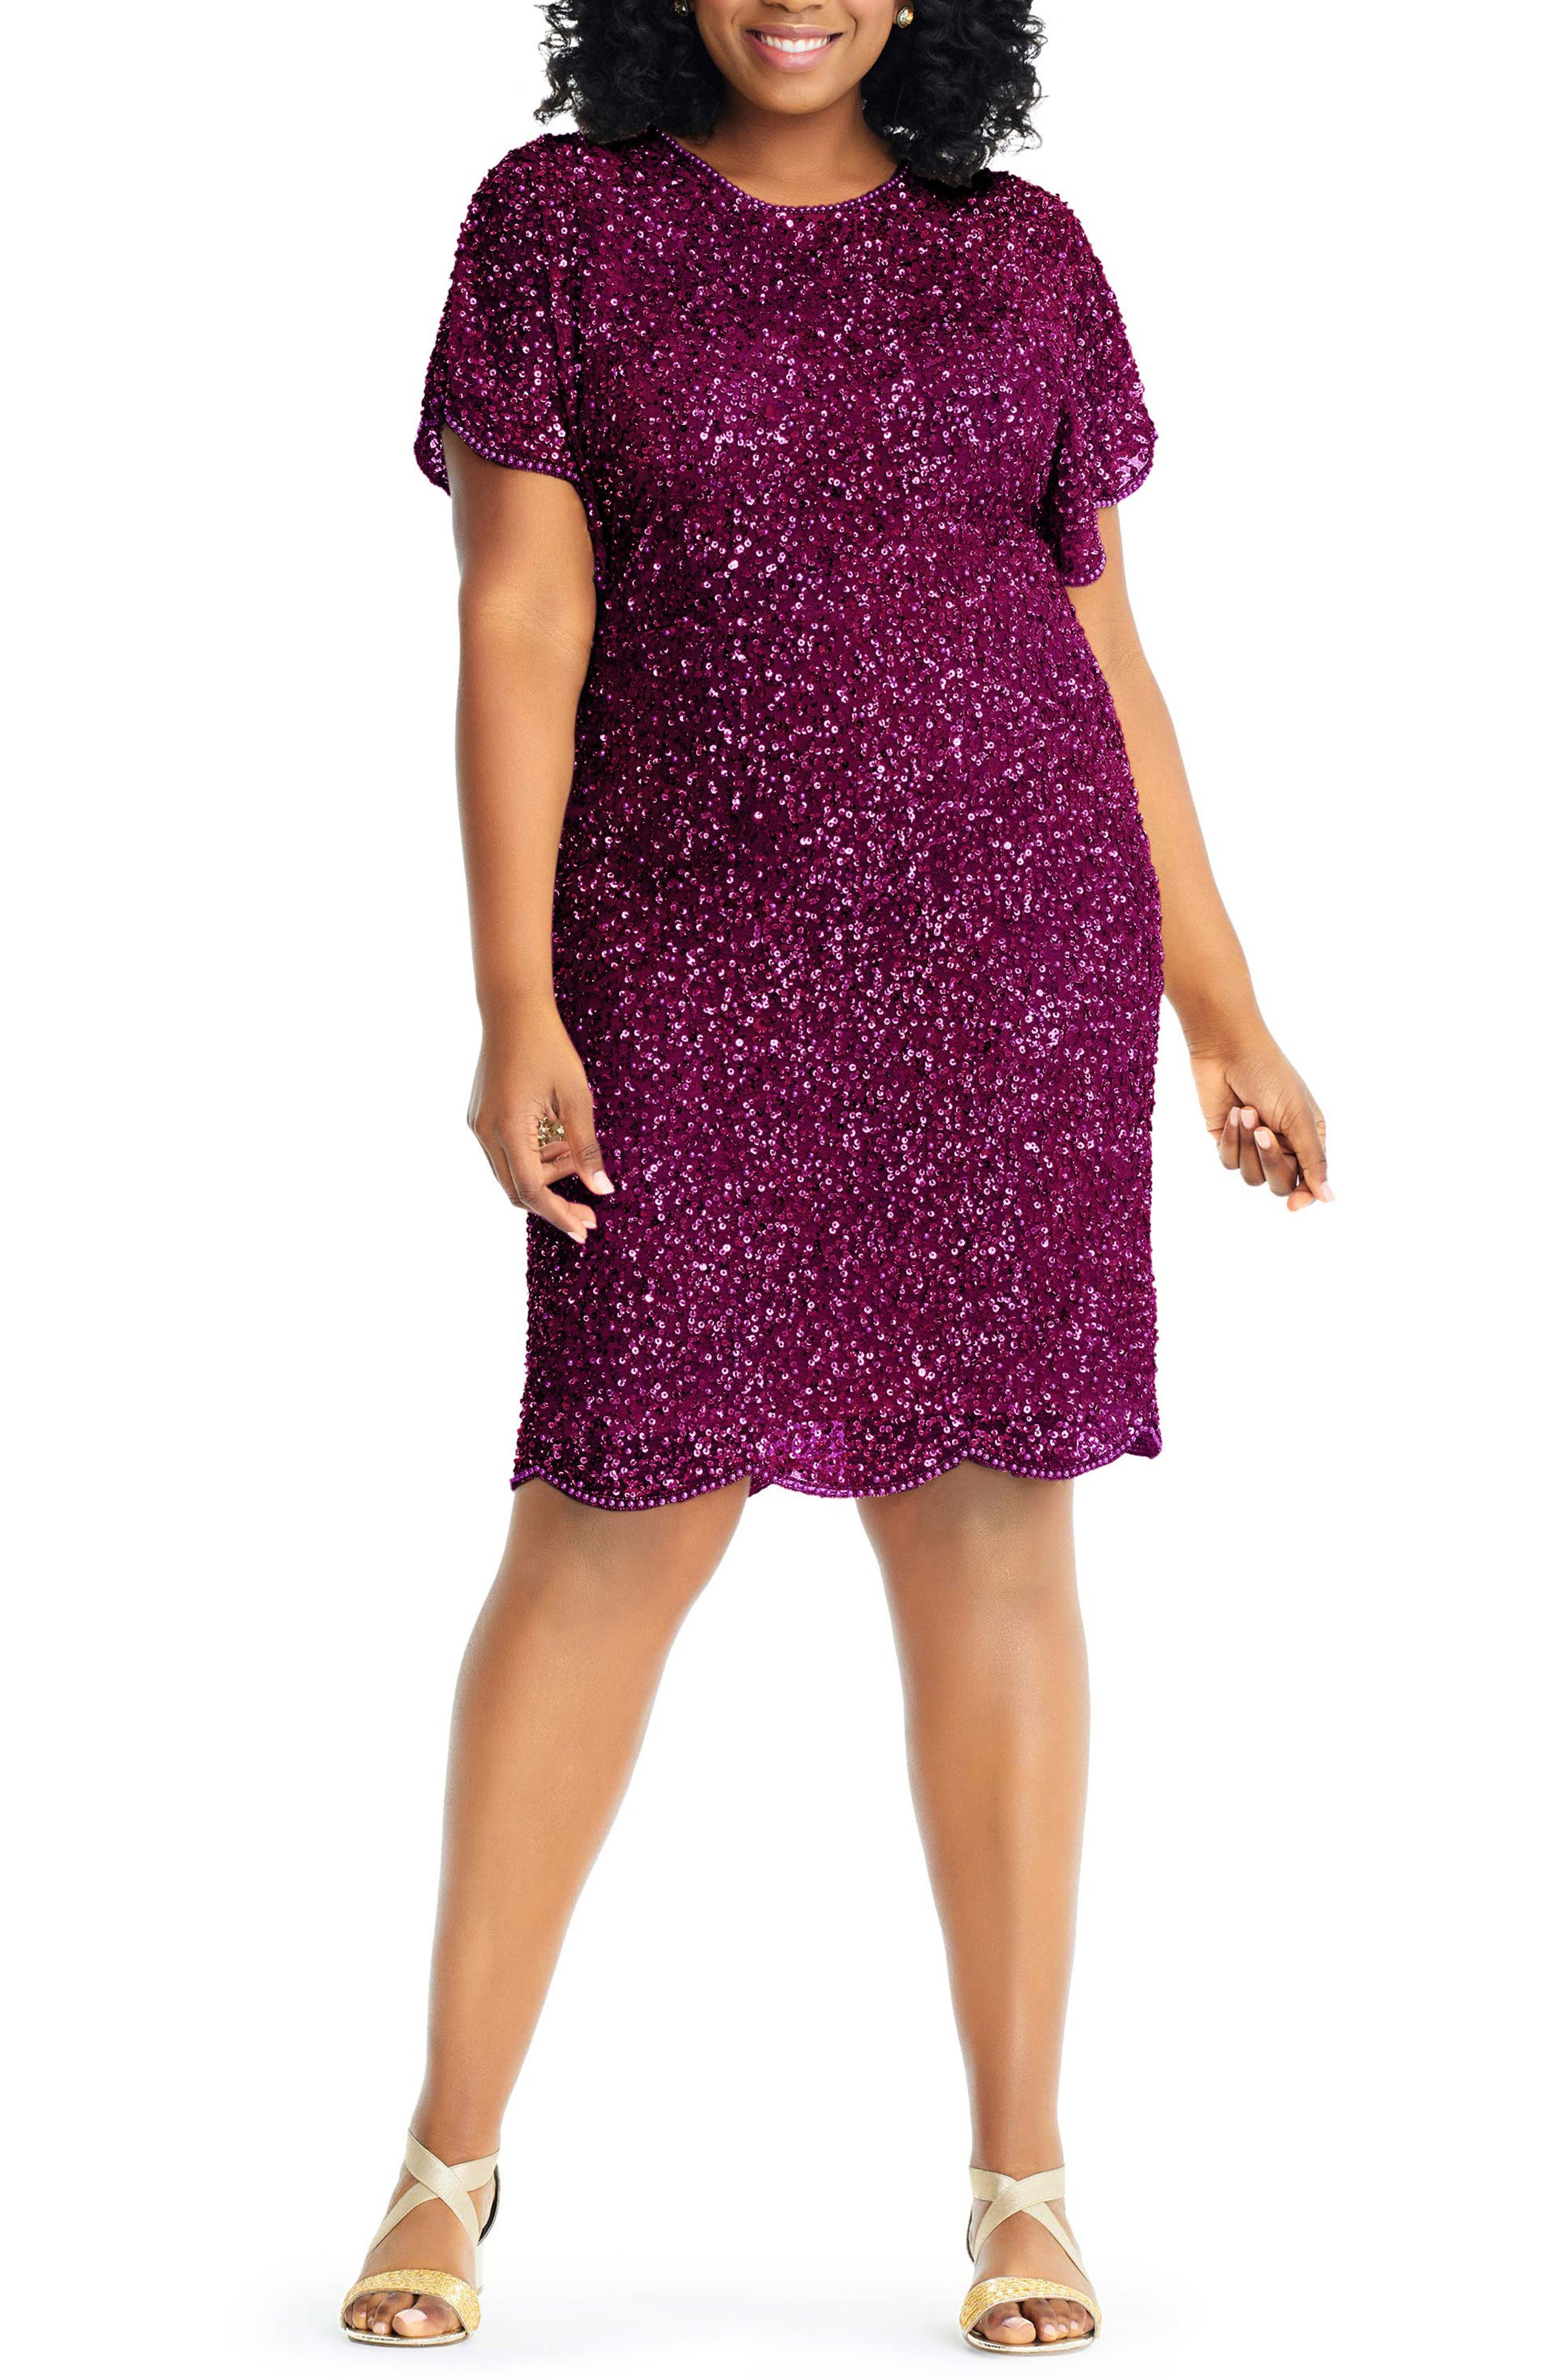 ADRIANNA PAPELL Plus Size Beaded Flutter-Sleeve Dress in Cabernet